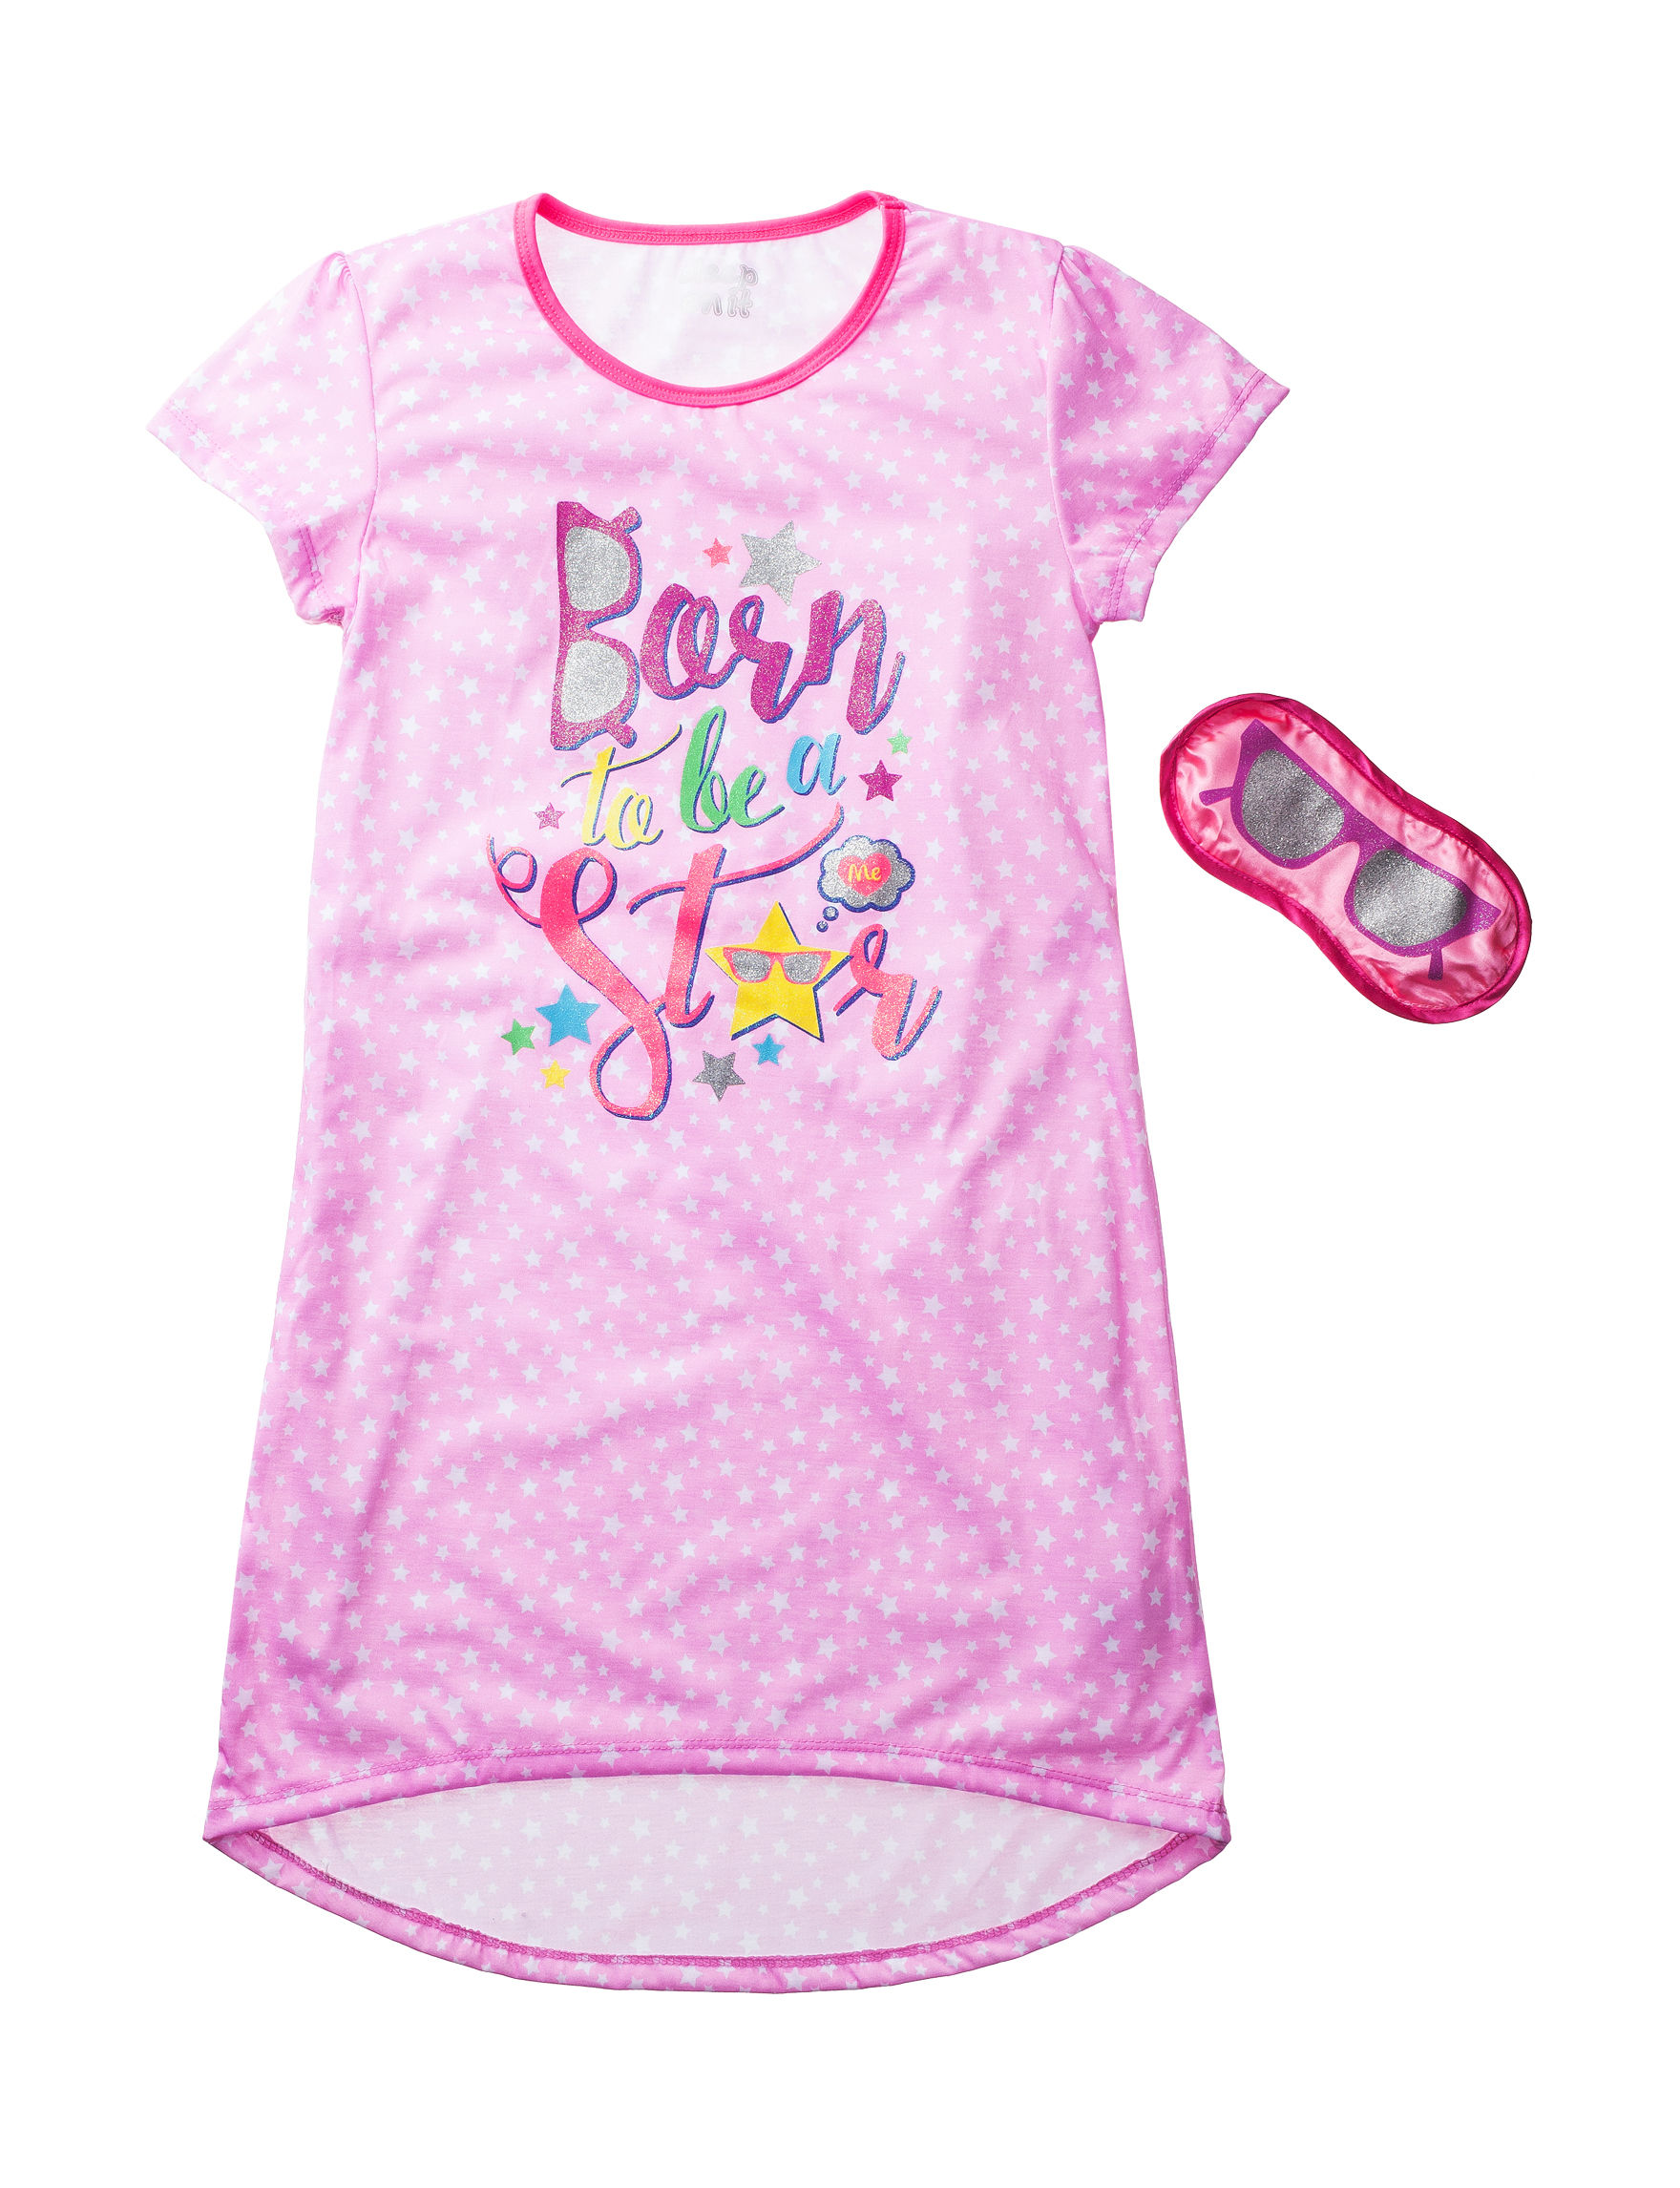 Cloud Nine Pink Nightgowns & Sleep Shirts